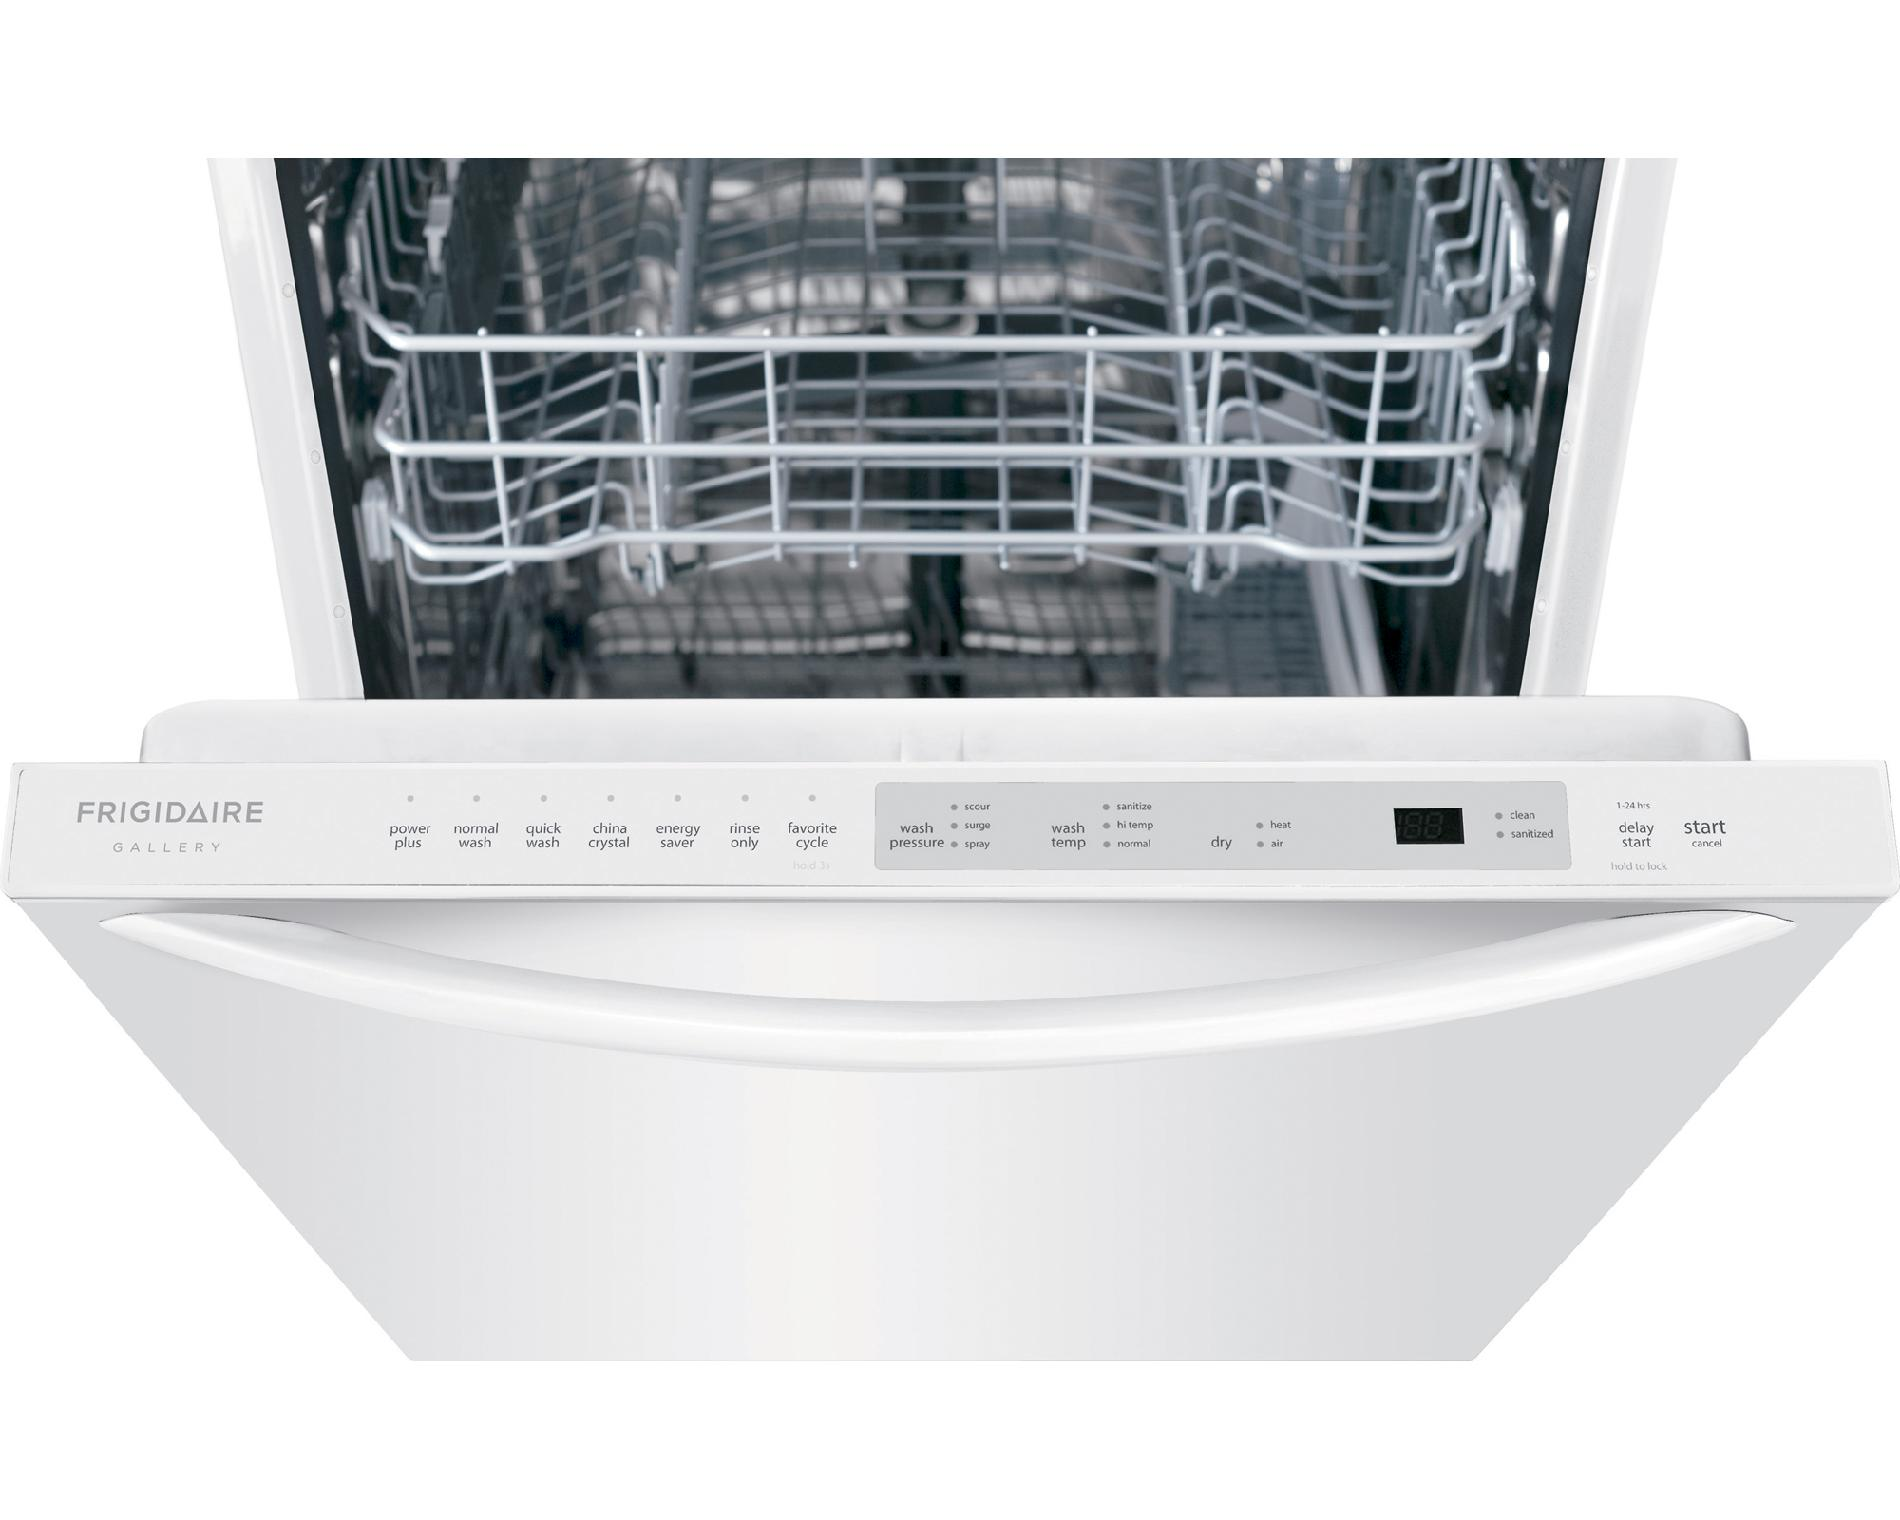 "Frigidaire Gallery FGID2474QW 24"" Built-In Dishwasher w/ OrbitClean® Wash System - White"